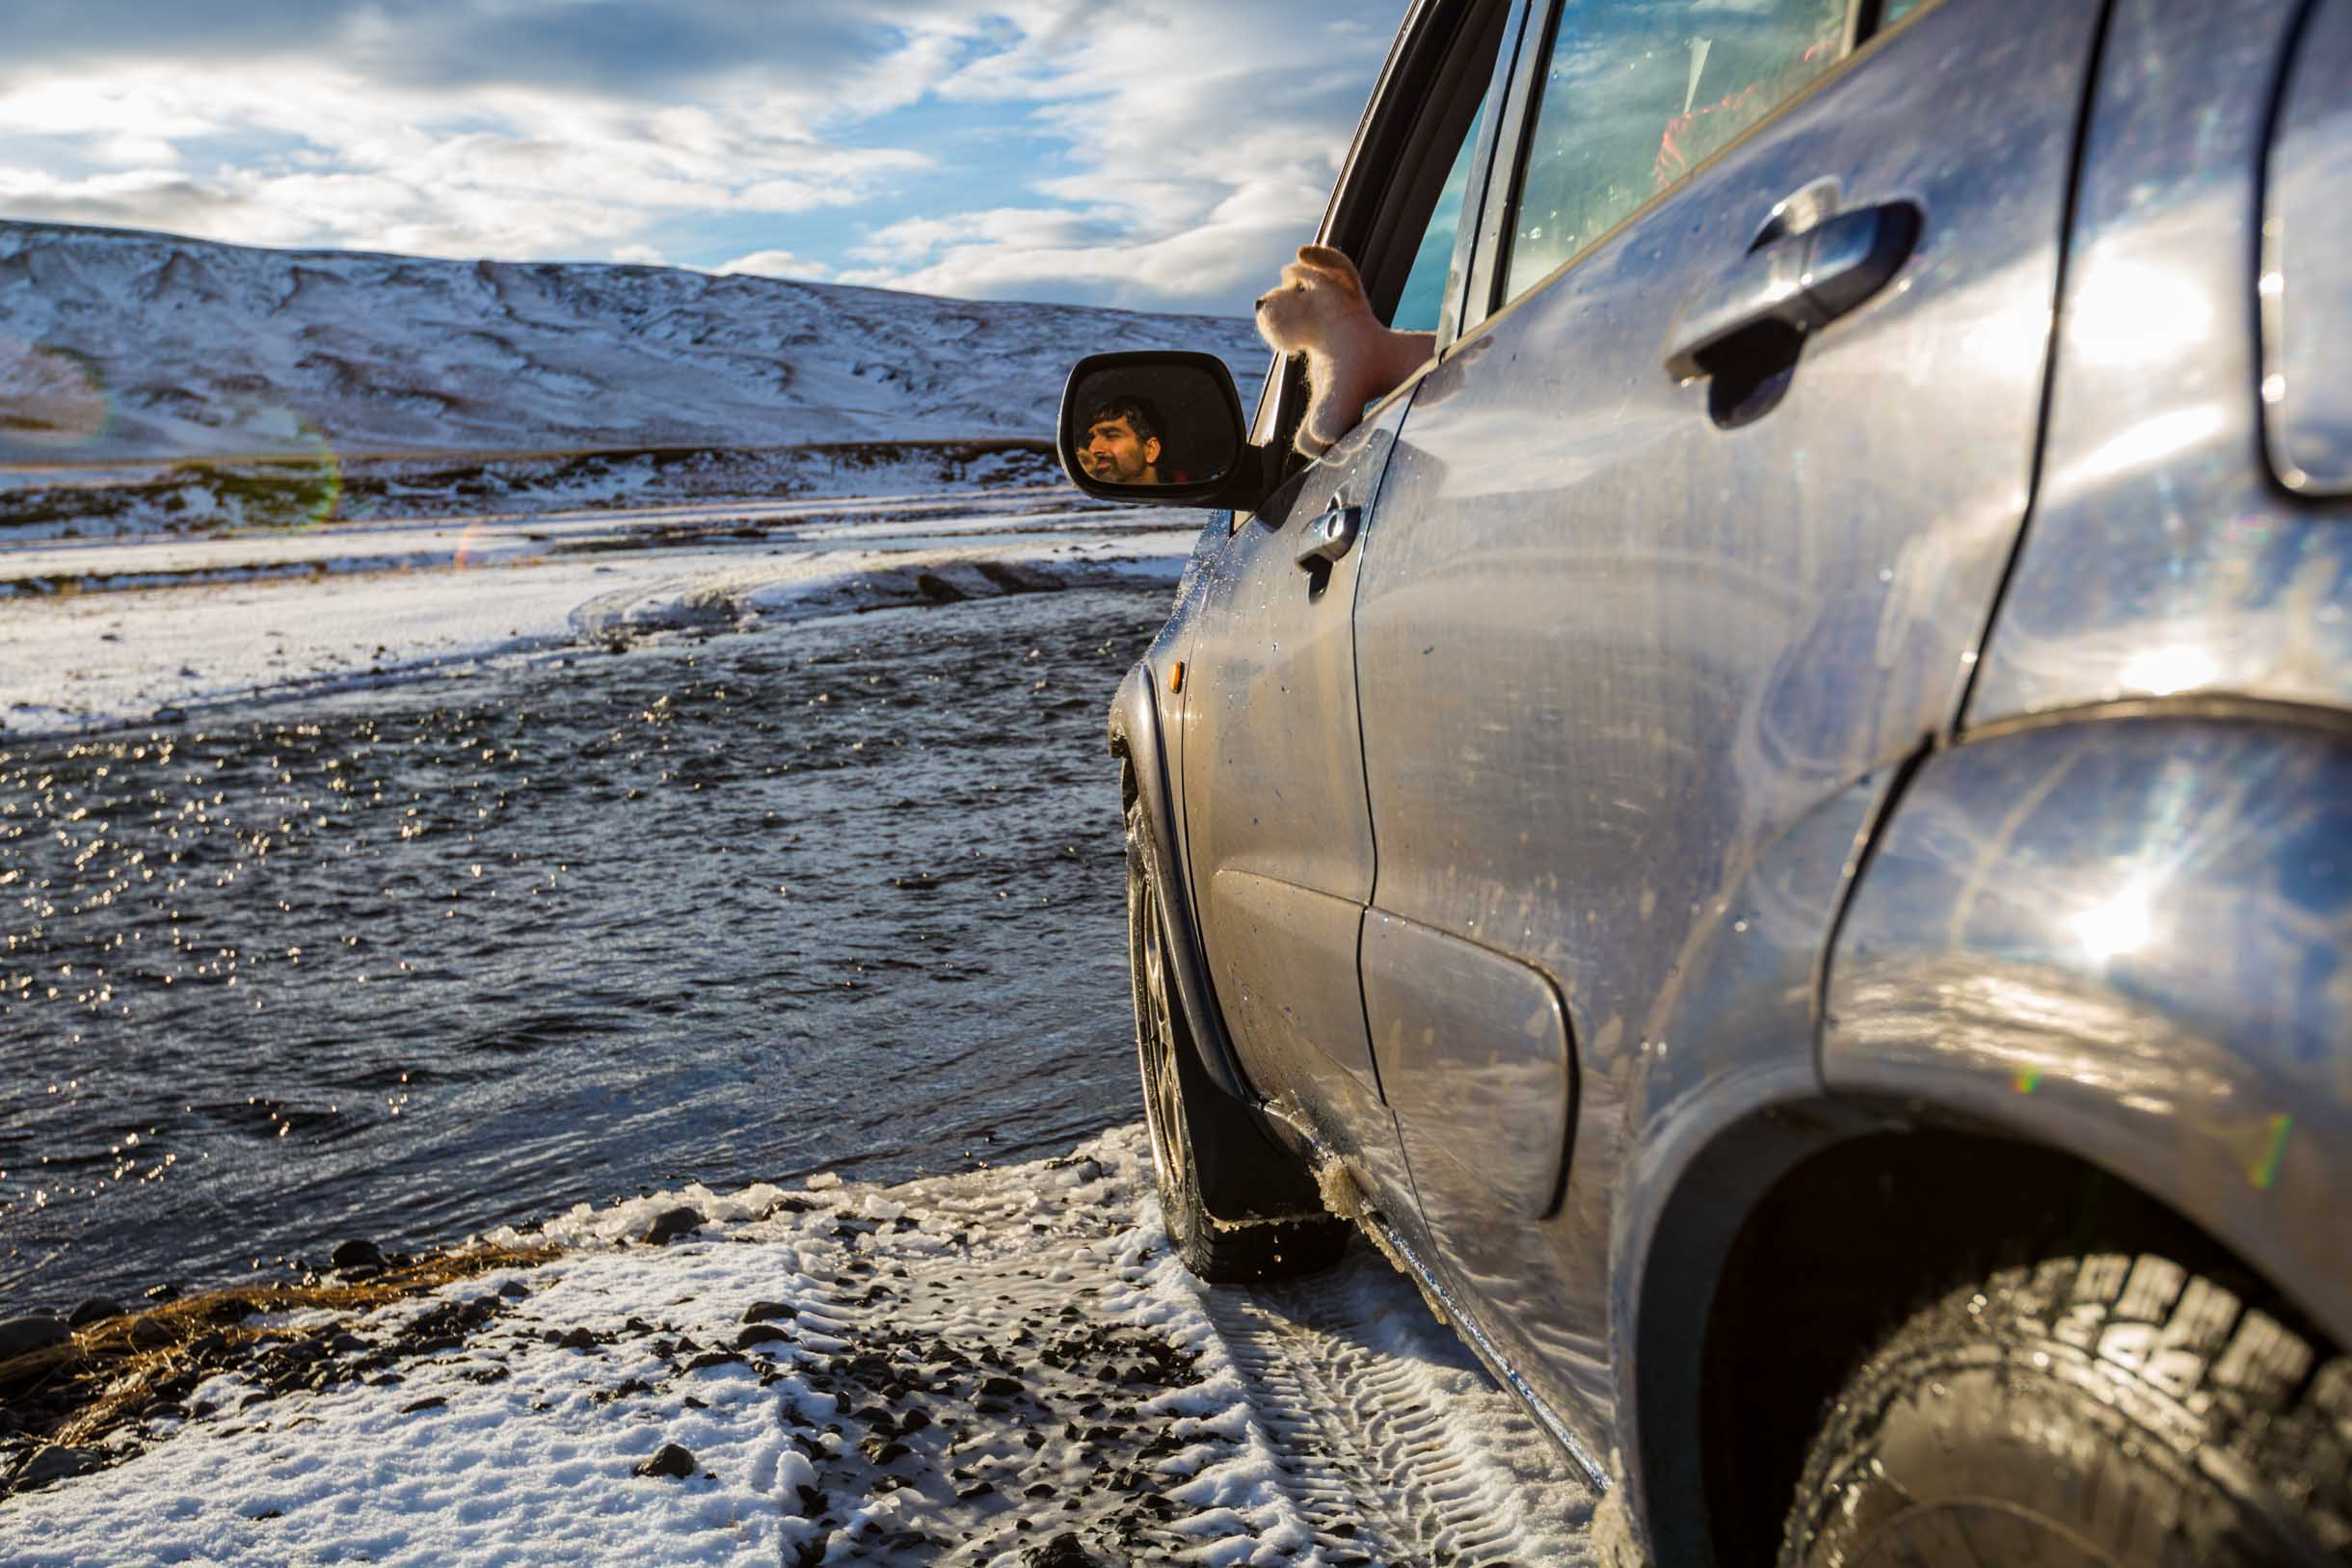 f-road river crossing in iceland winter time